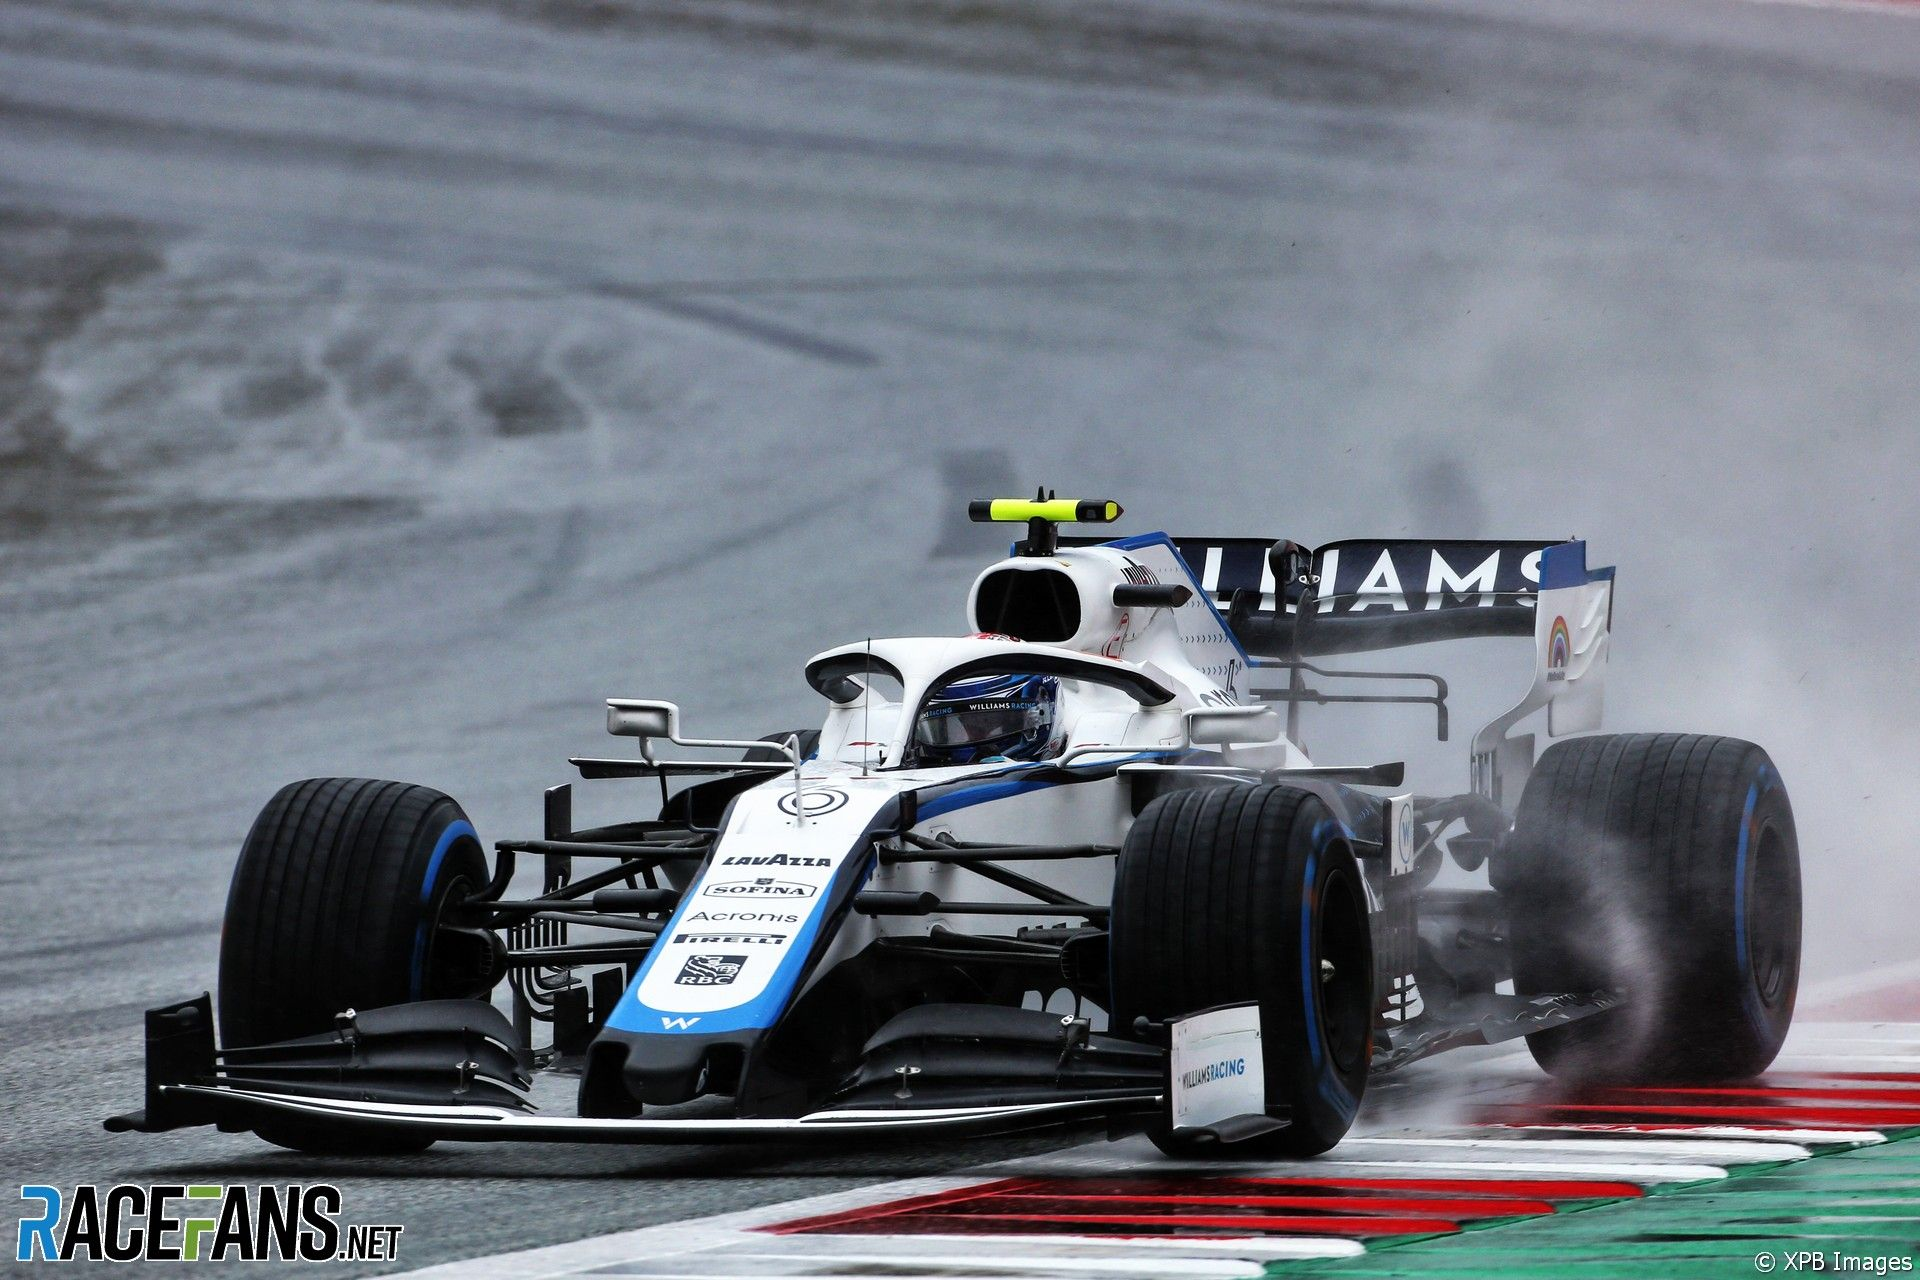 Williams Racing Background 7